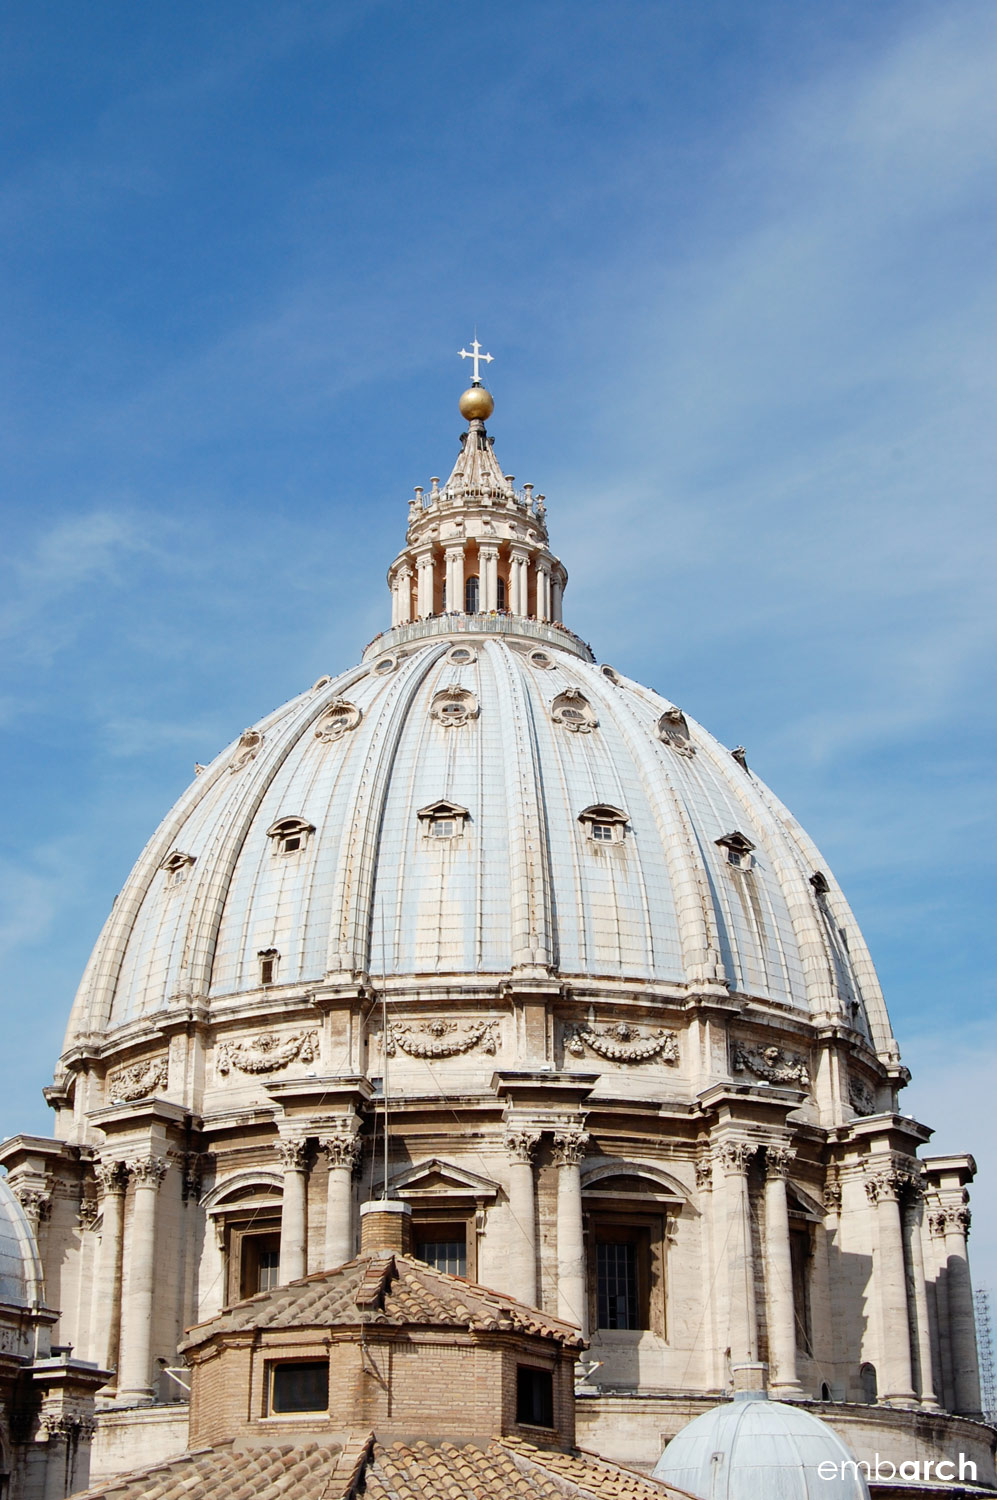 St. Peter's Basilica - view of main basilica dome.